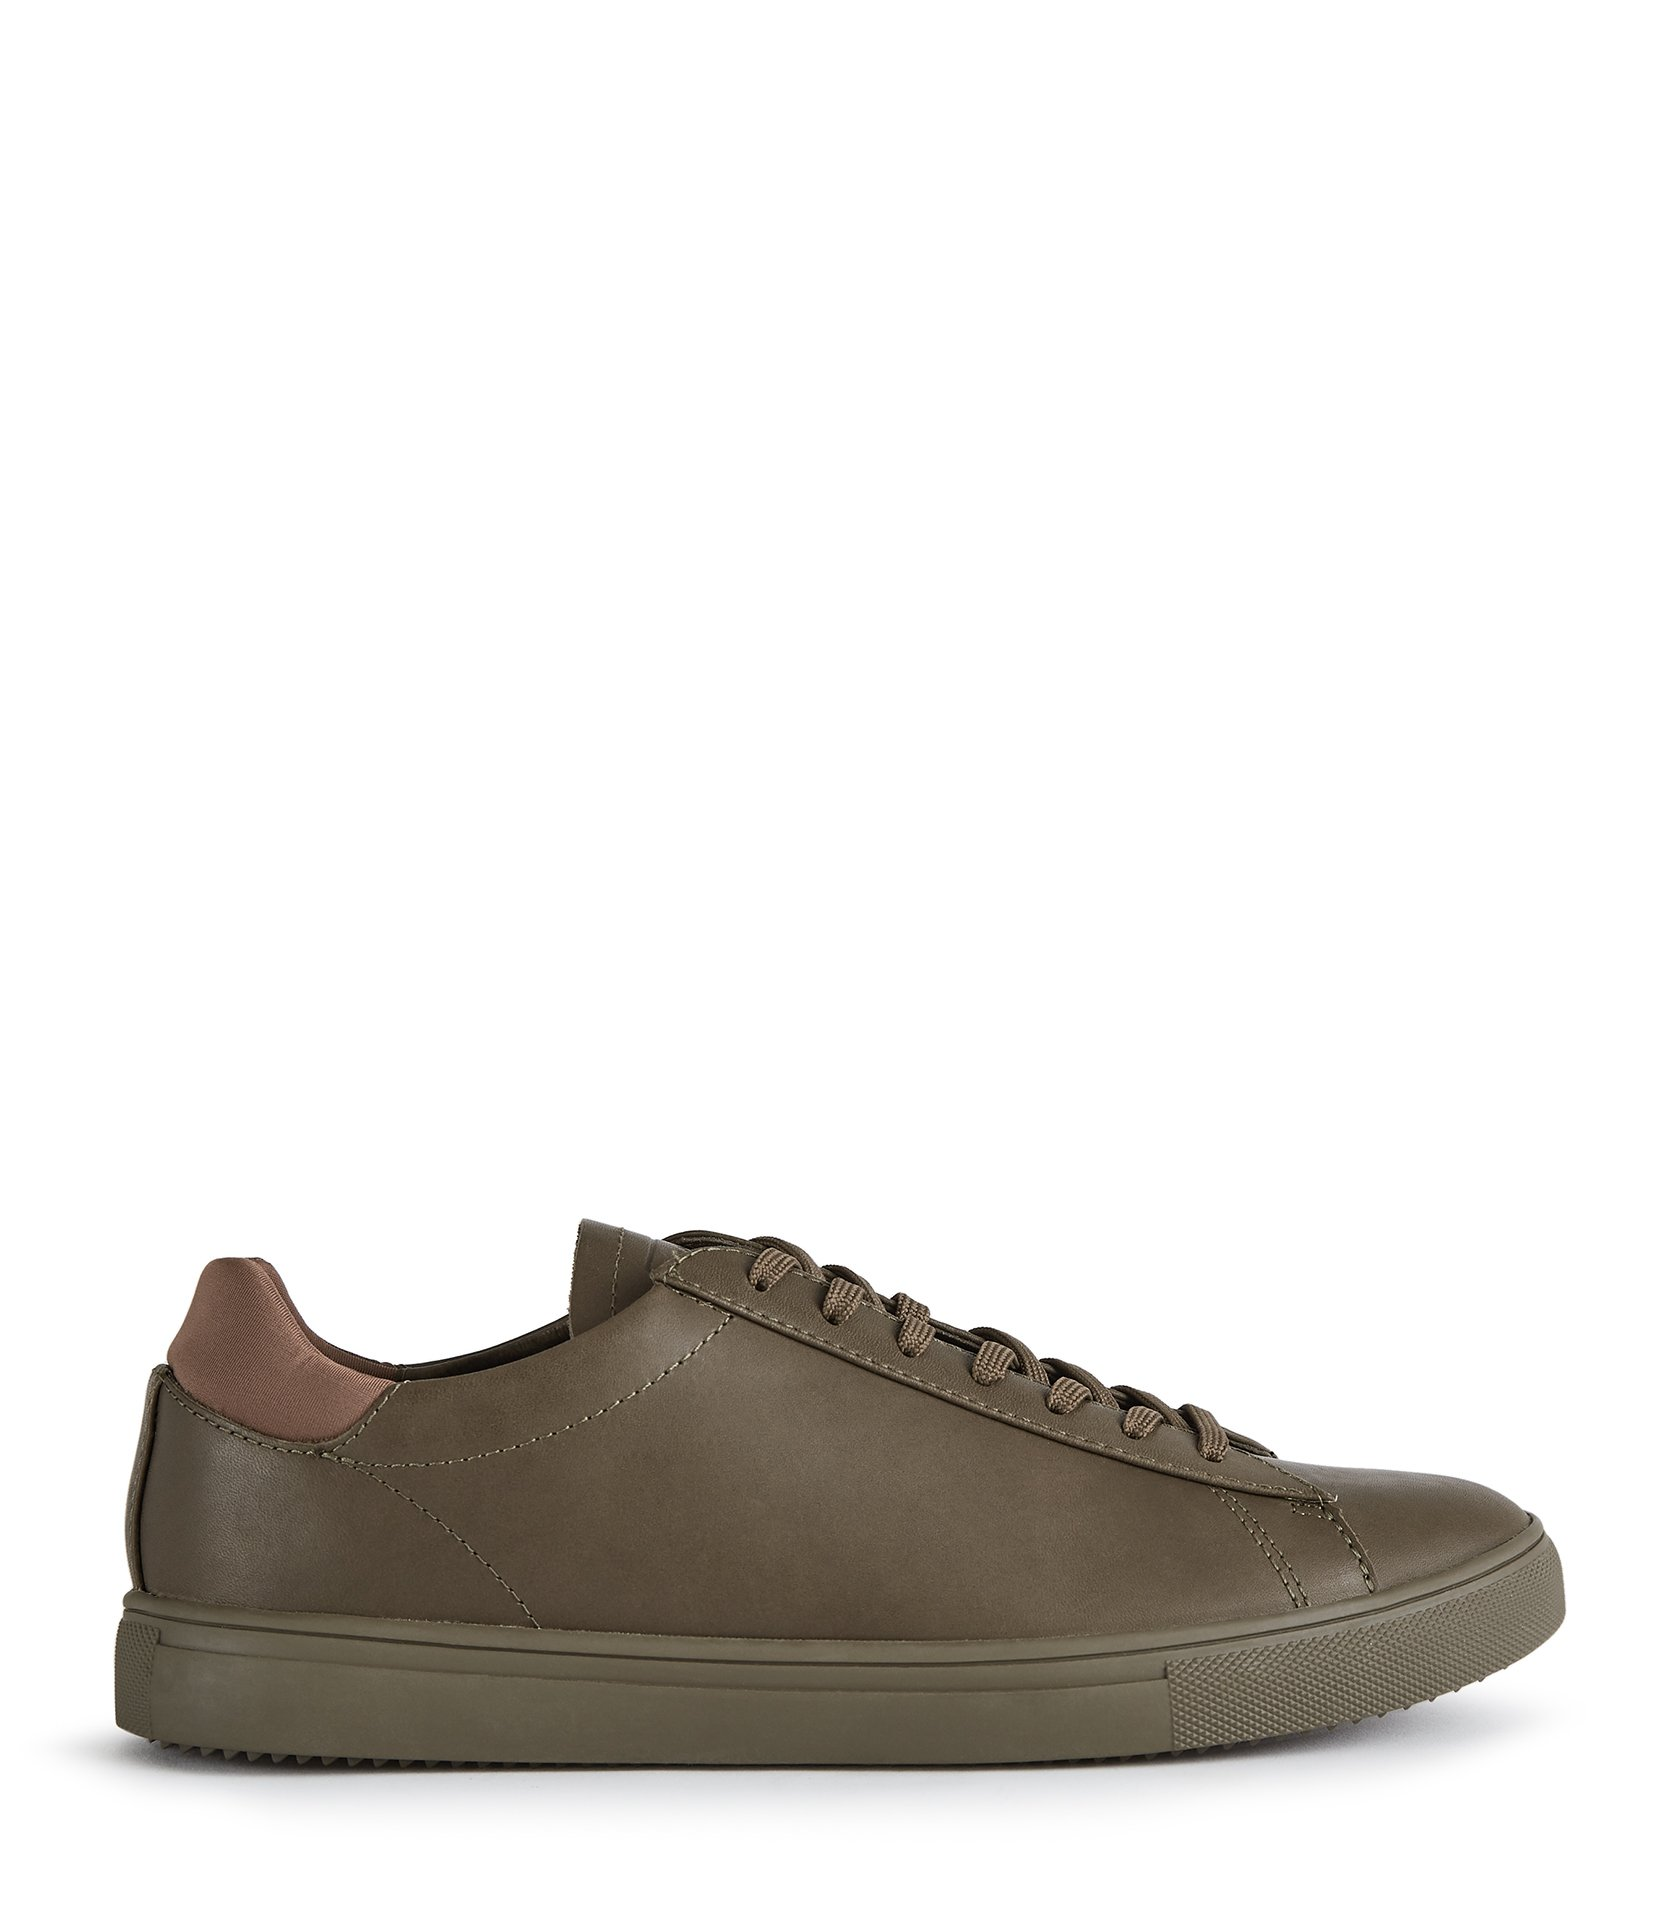 Reiss Olive Bradley Clae Leather Sneakers